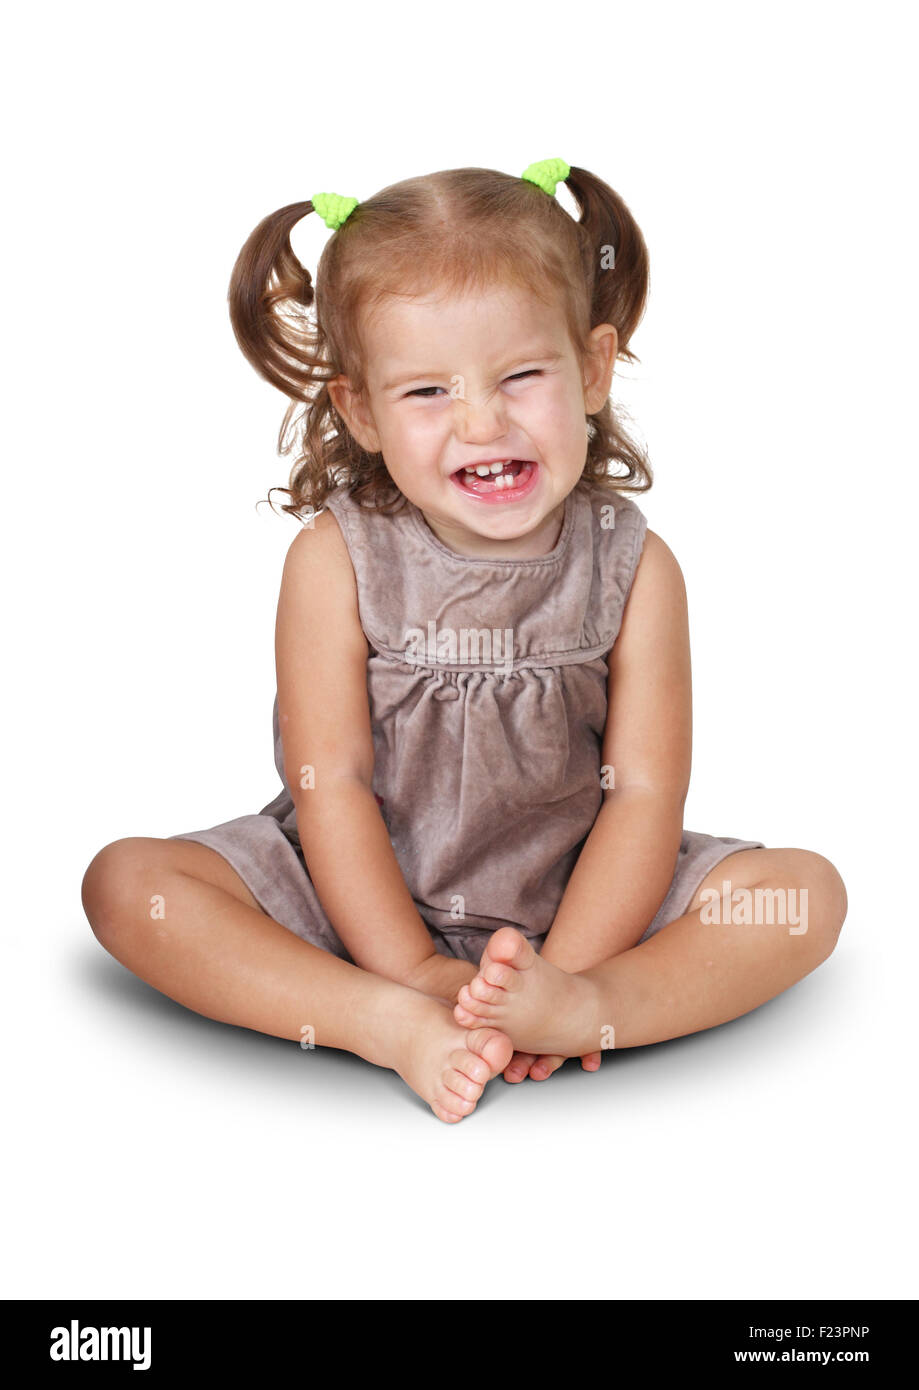 Fille enfant en colère assis avec grin isolated on white Photo Stock